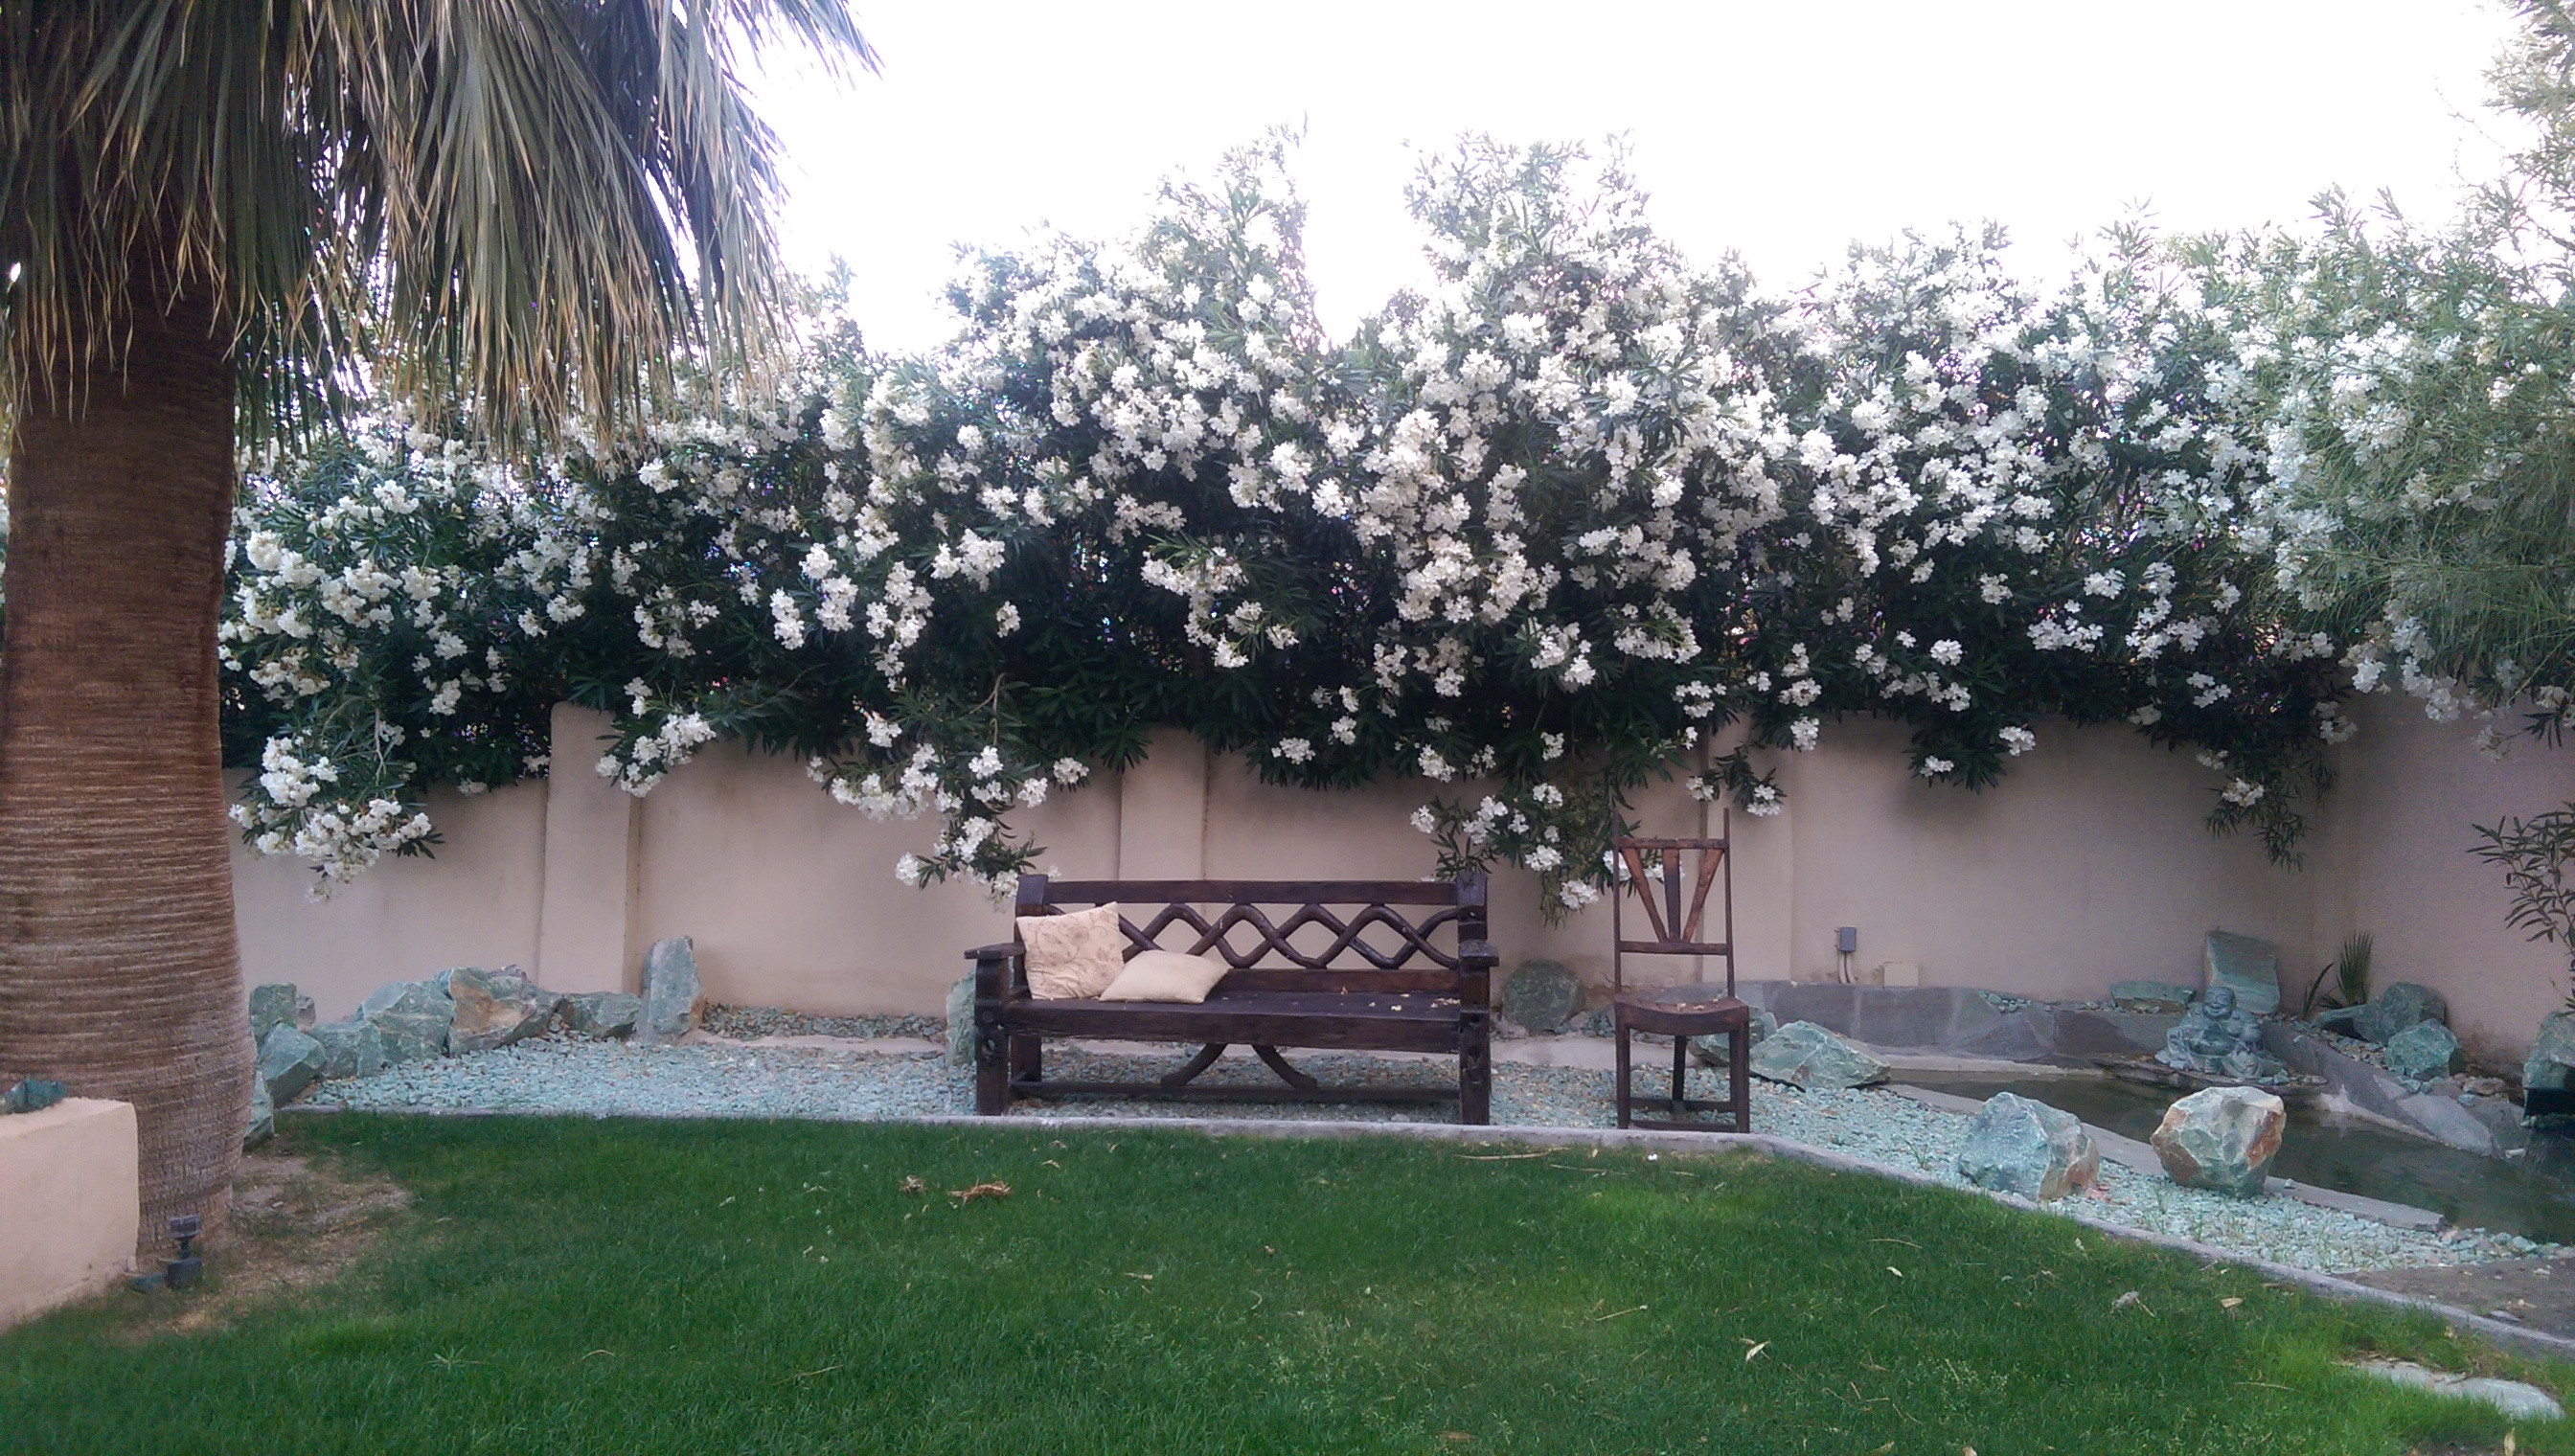 Sitting Area Under the Flowers